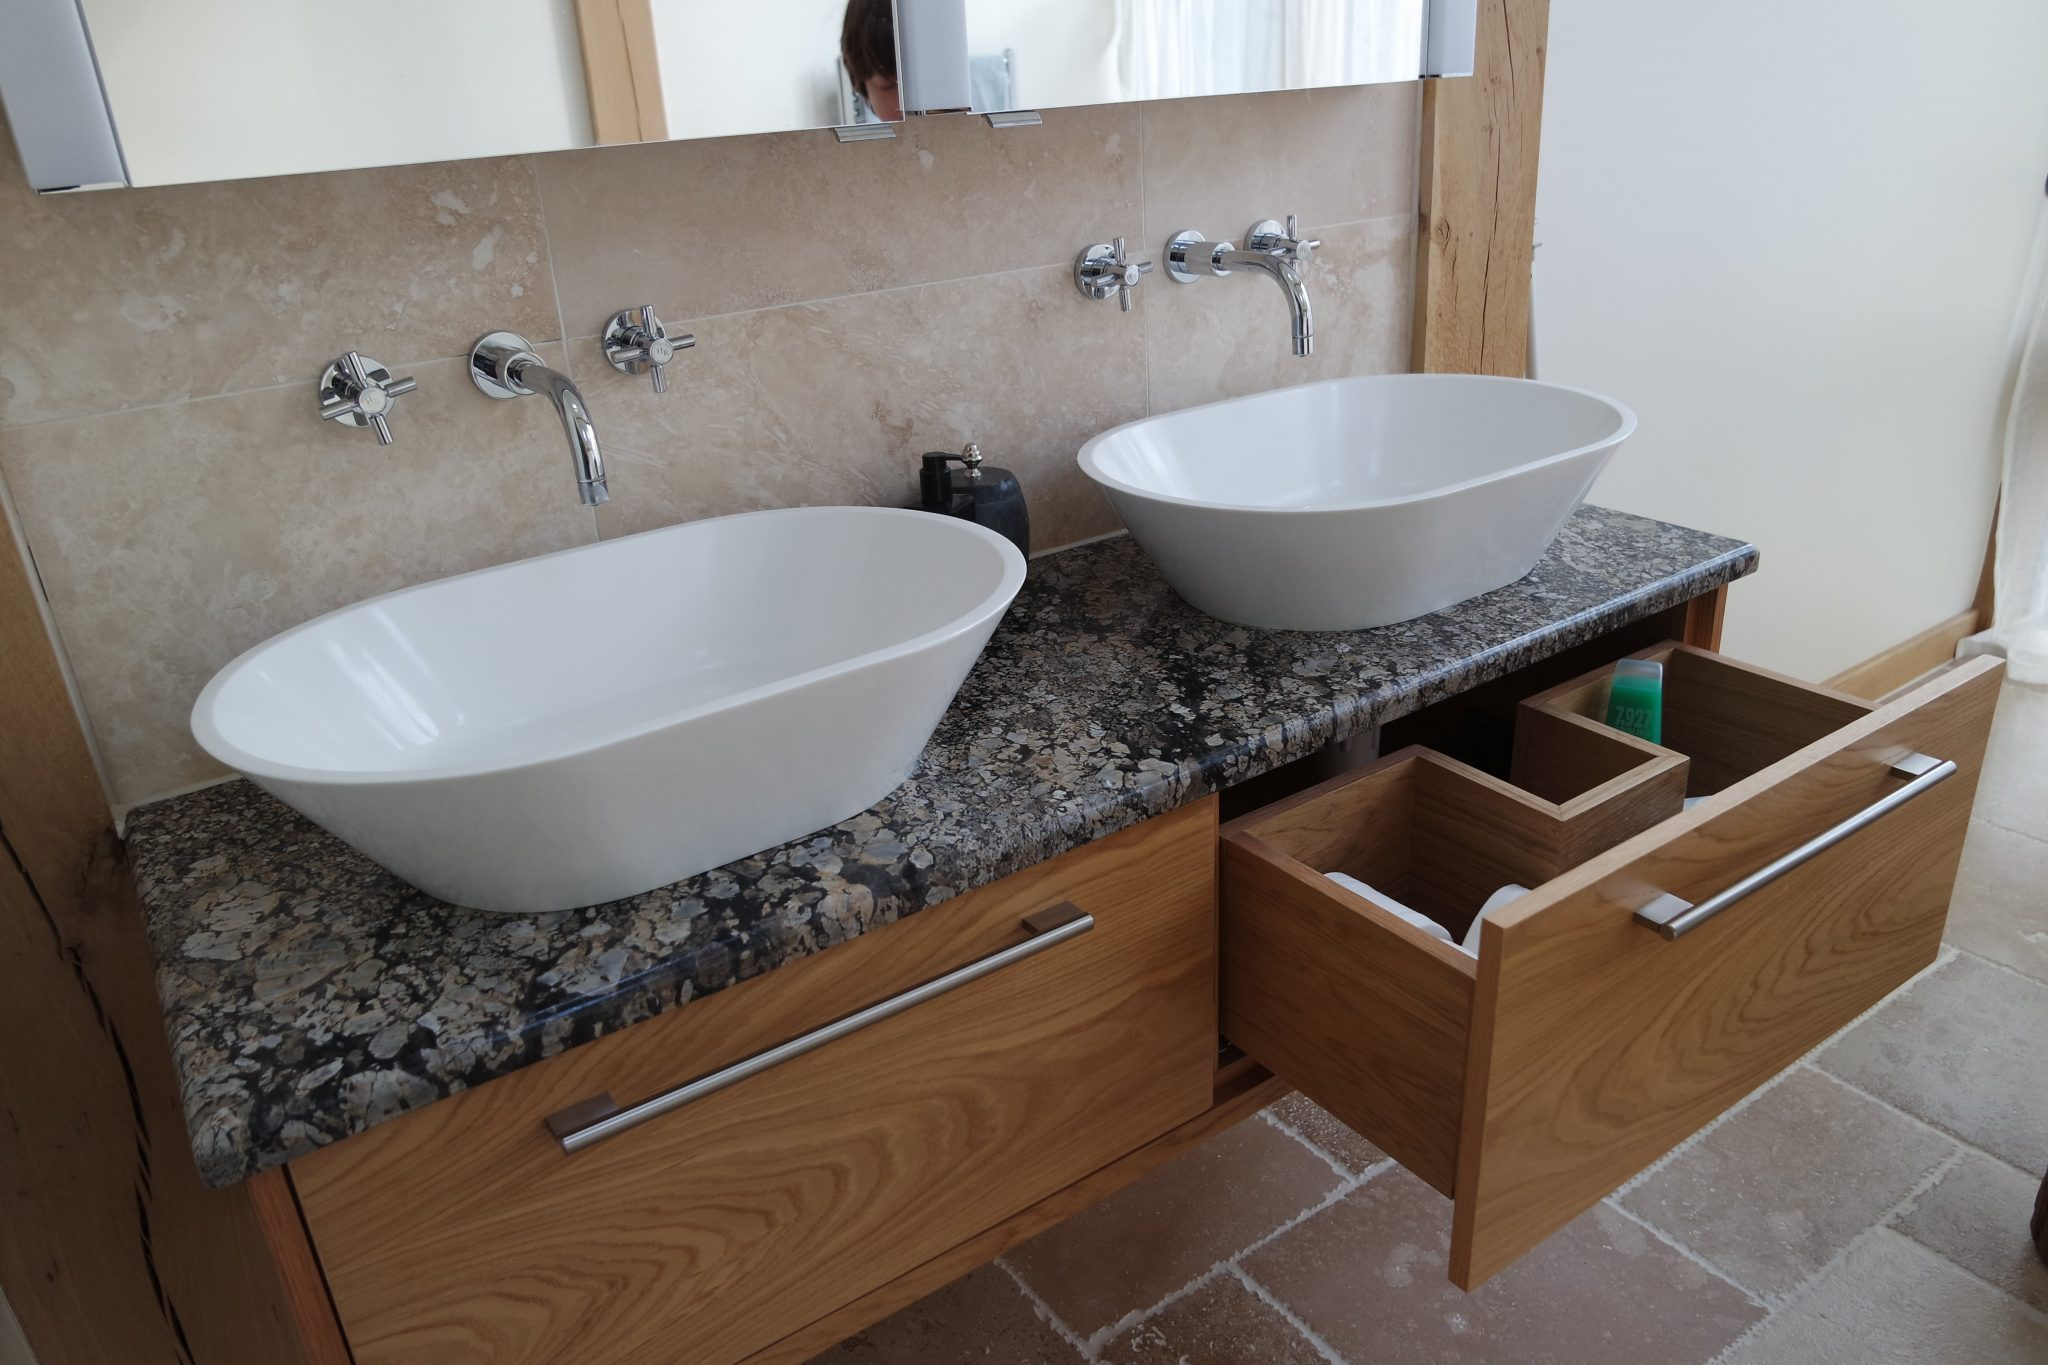 Double sink bespoke Oak vanity unity